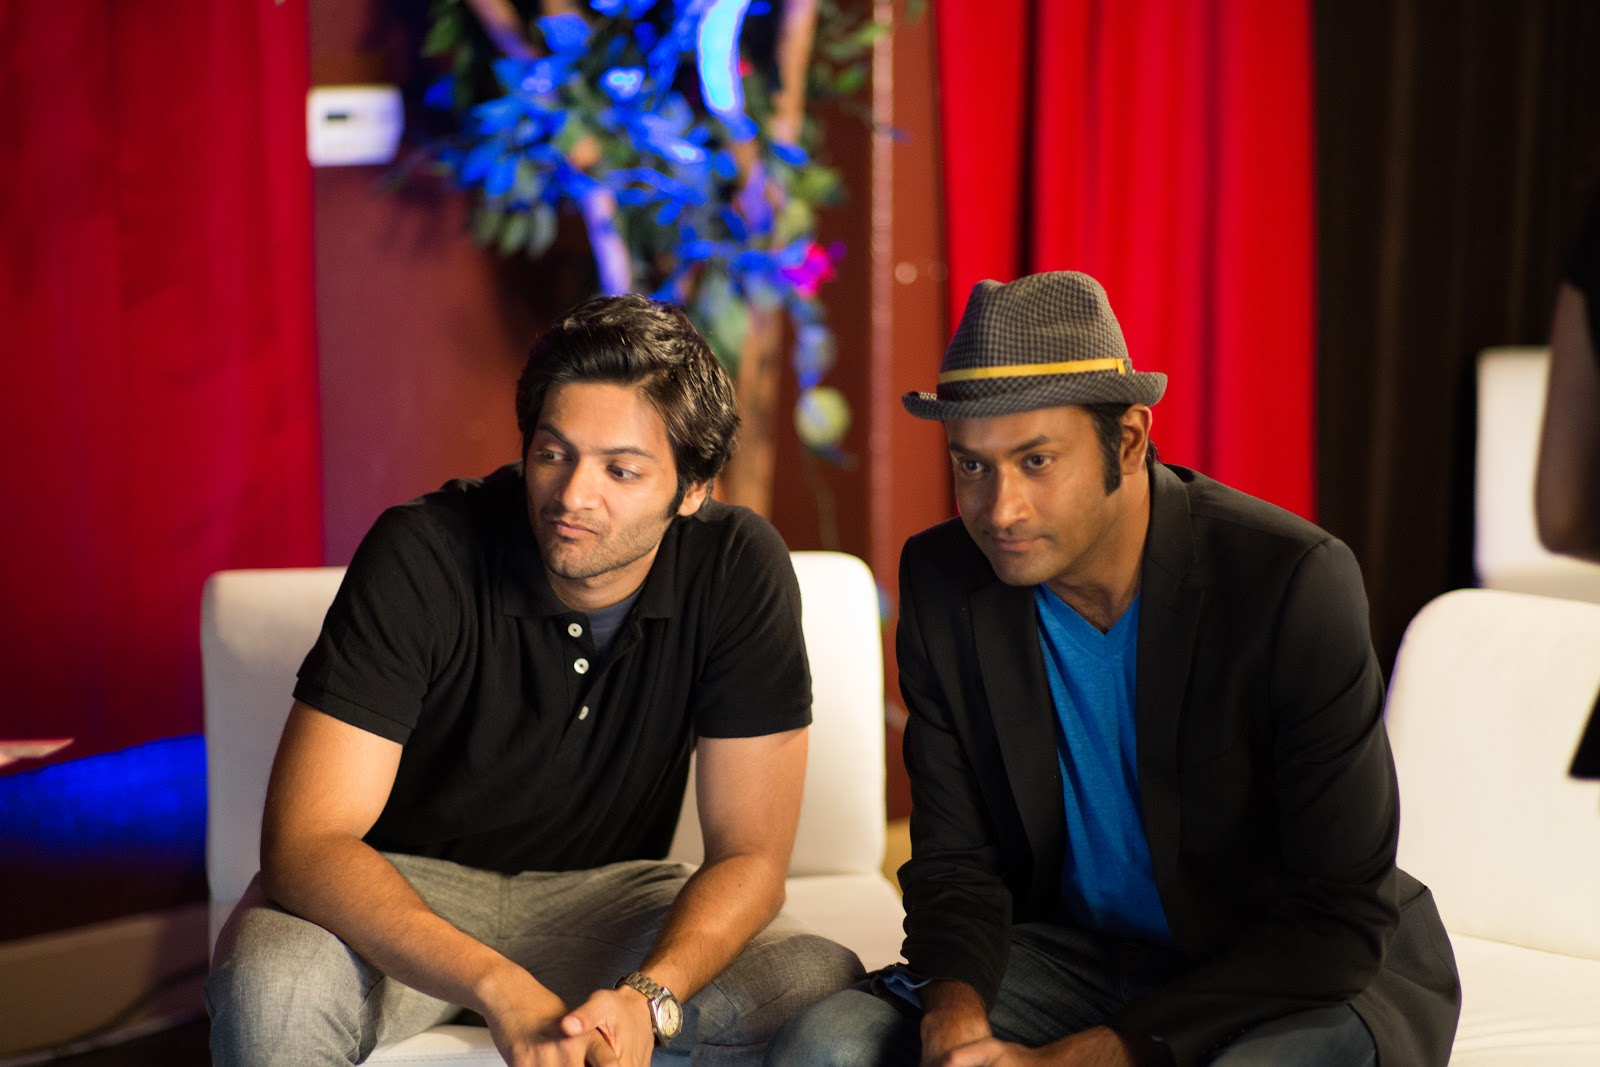 Ali Fazal and Samrat Chakrabarti at Madhuban Indian Cuisine in San Jose, in a scene from 'For Here or To Go?' directed by Rucha Humnabadkar. (Credit: Many Cups of Chai Films)